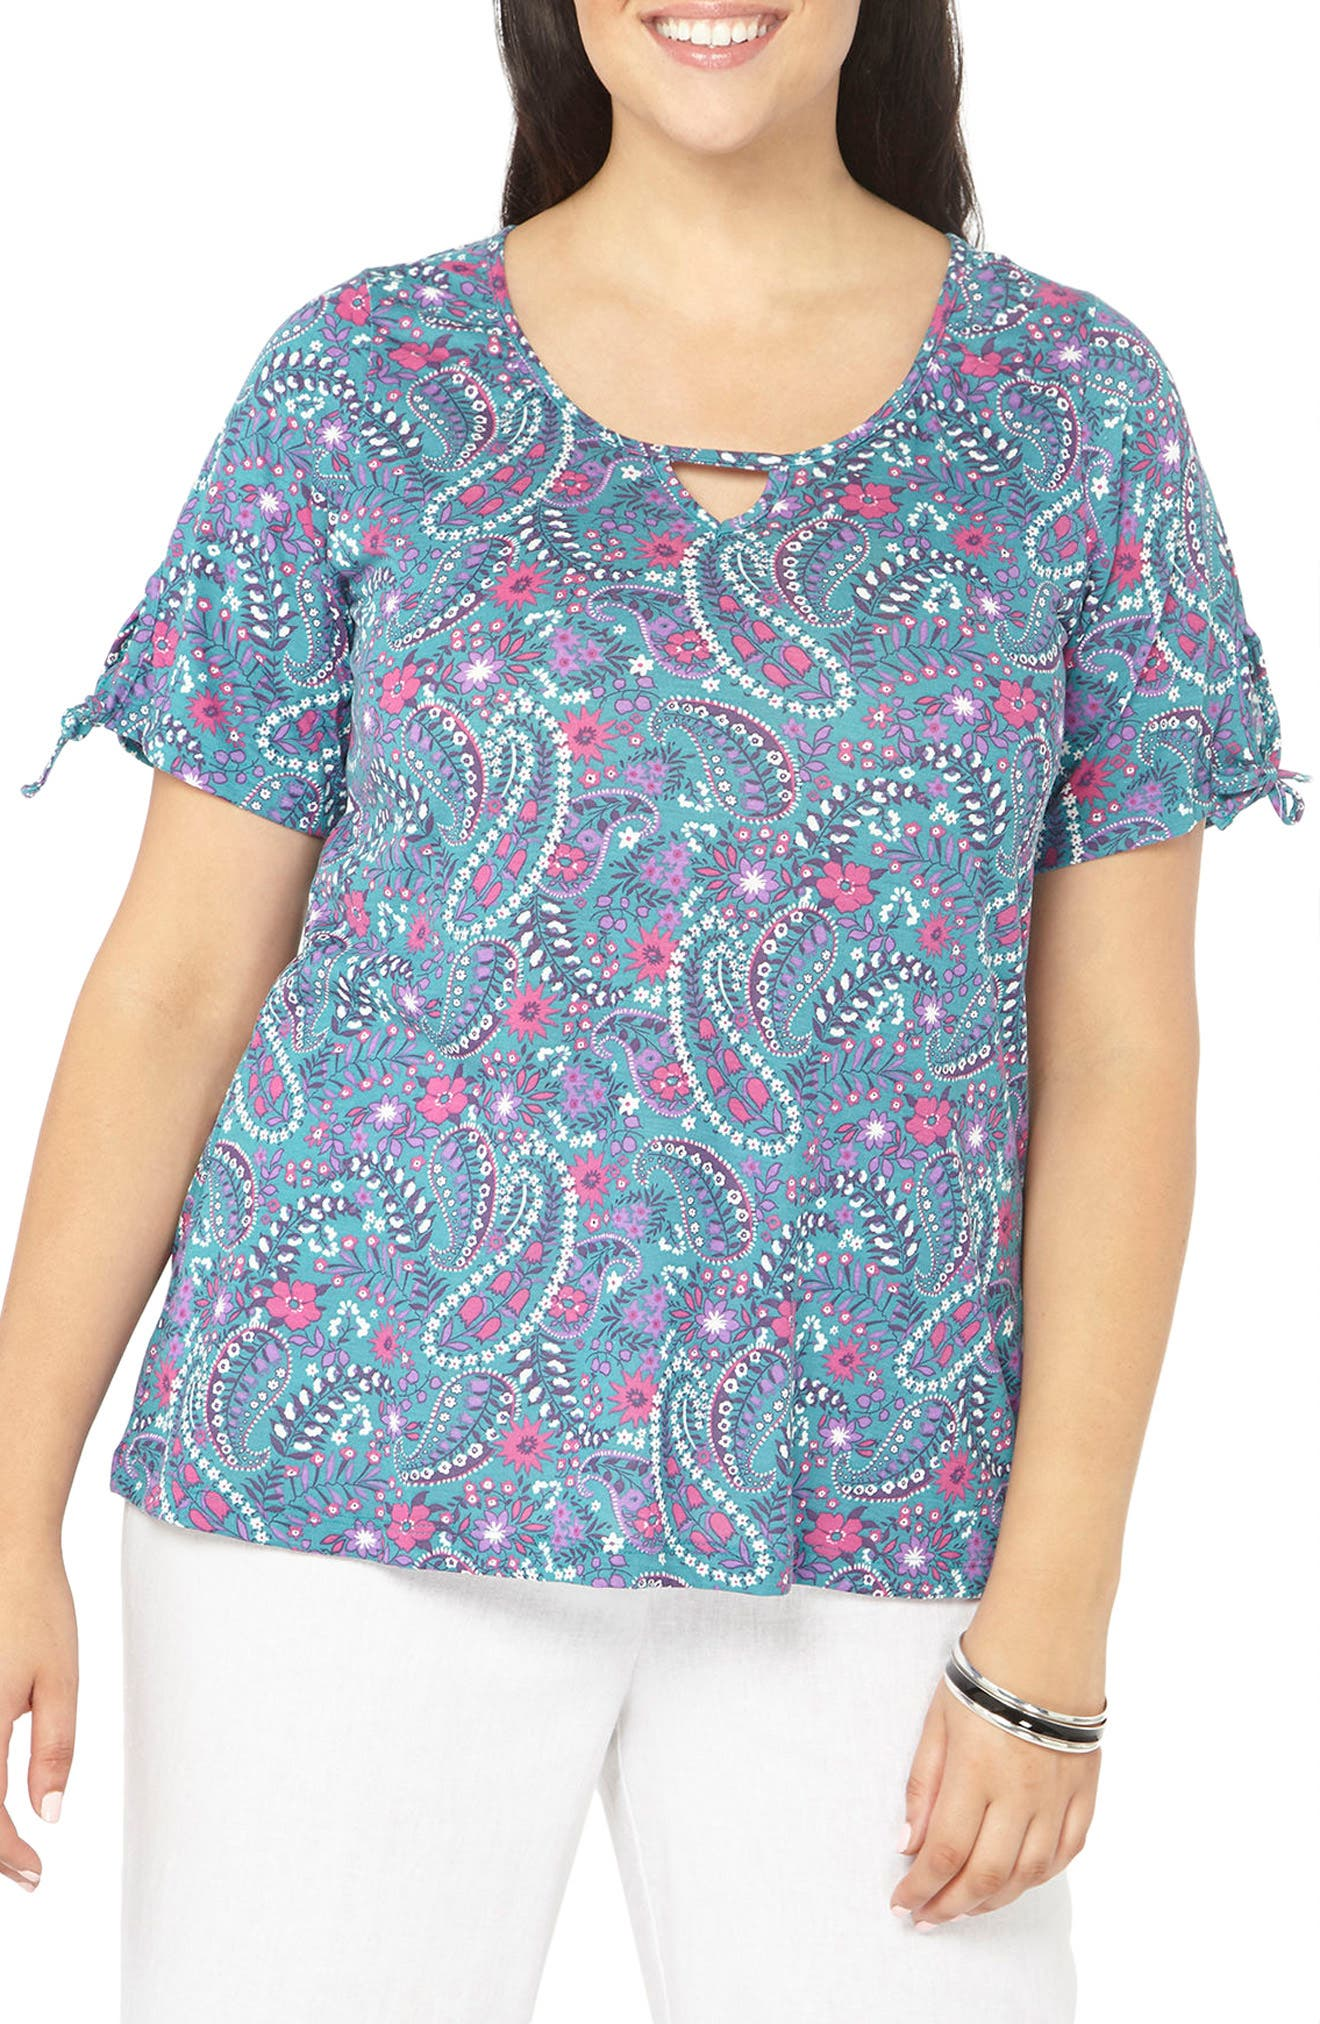 Alternate Image 1 Selected - Evans Paisley Floral Top (Plus Size)